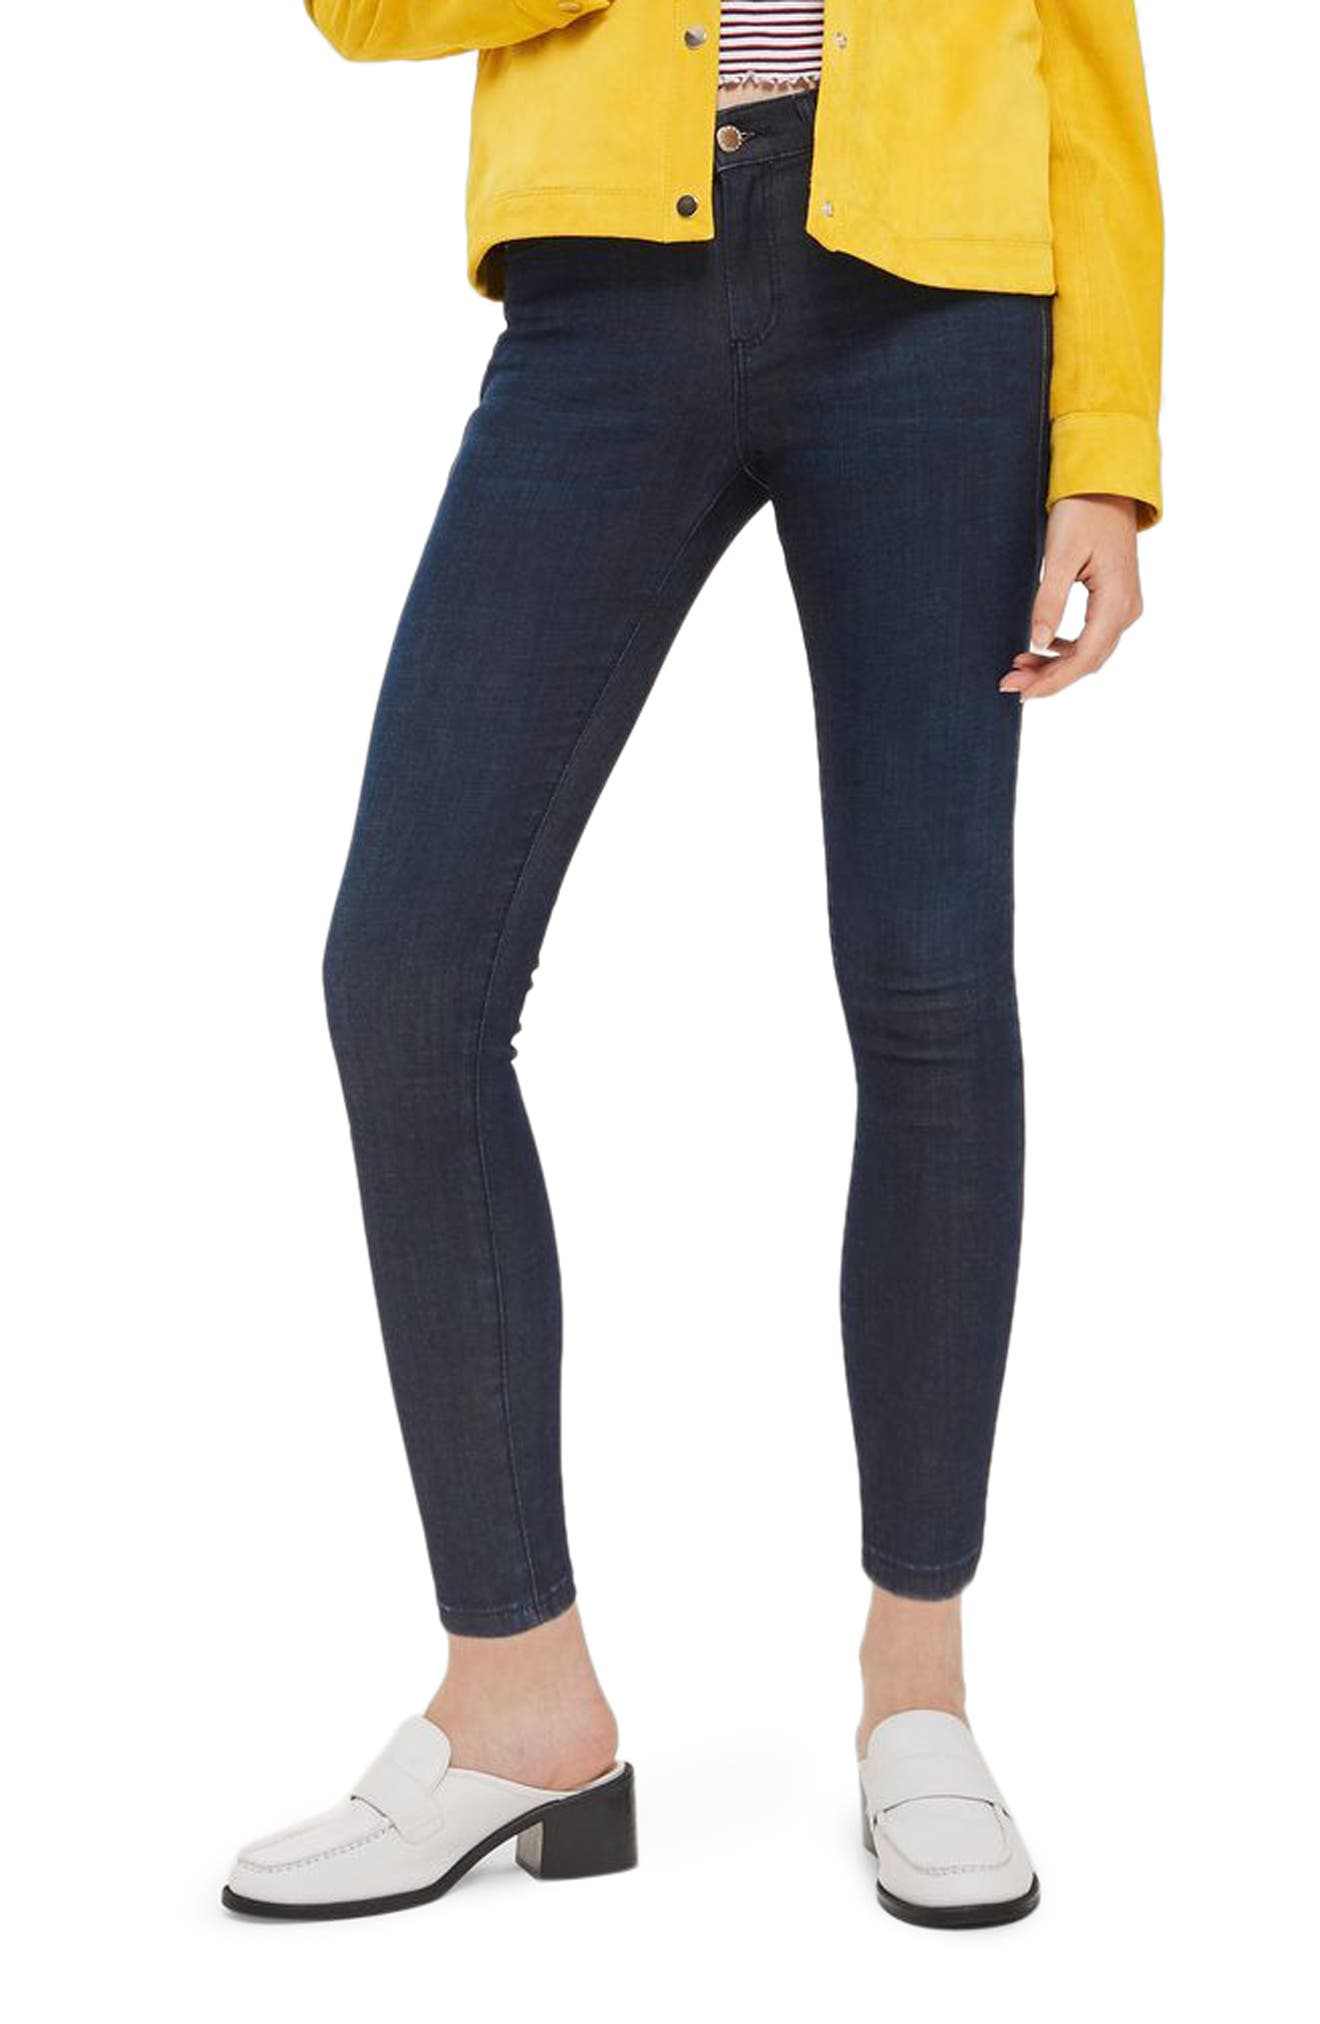 Topshop Leigh Skinny Ankle Jeans (Petite)